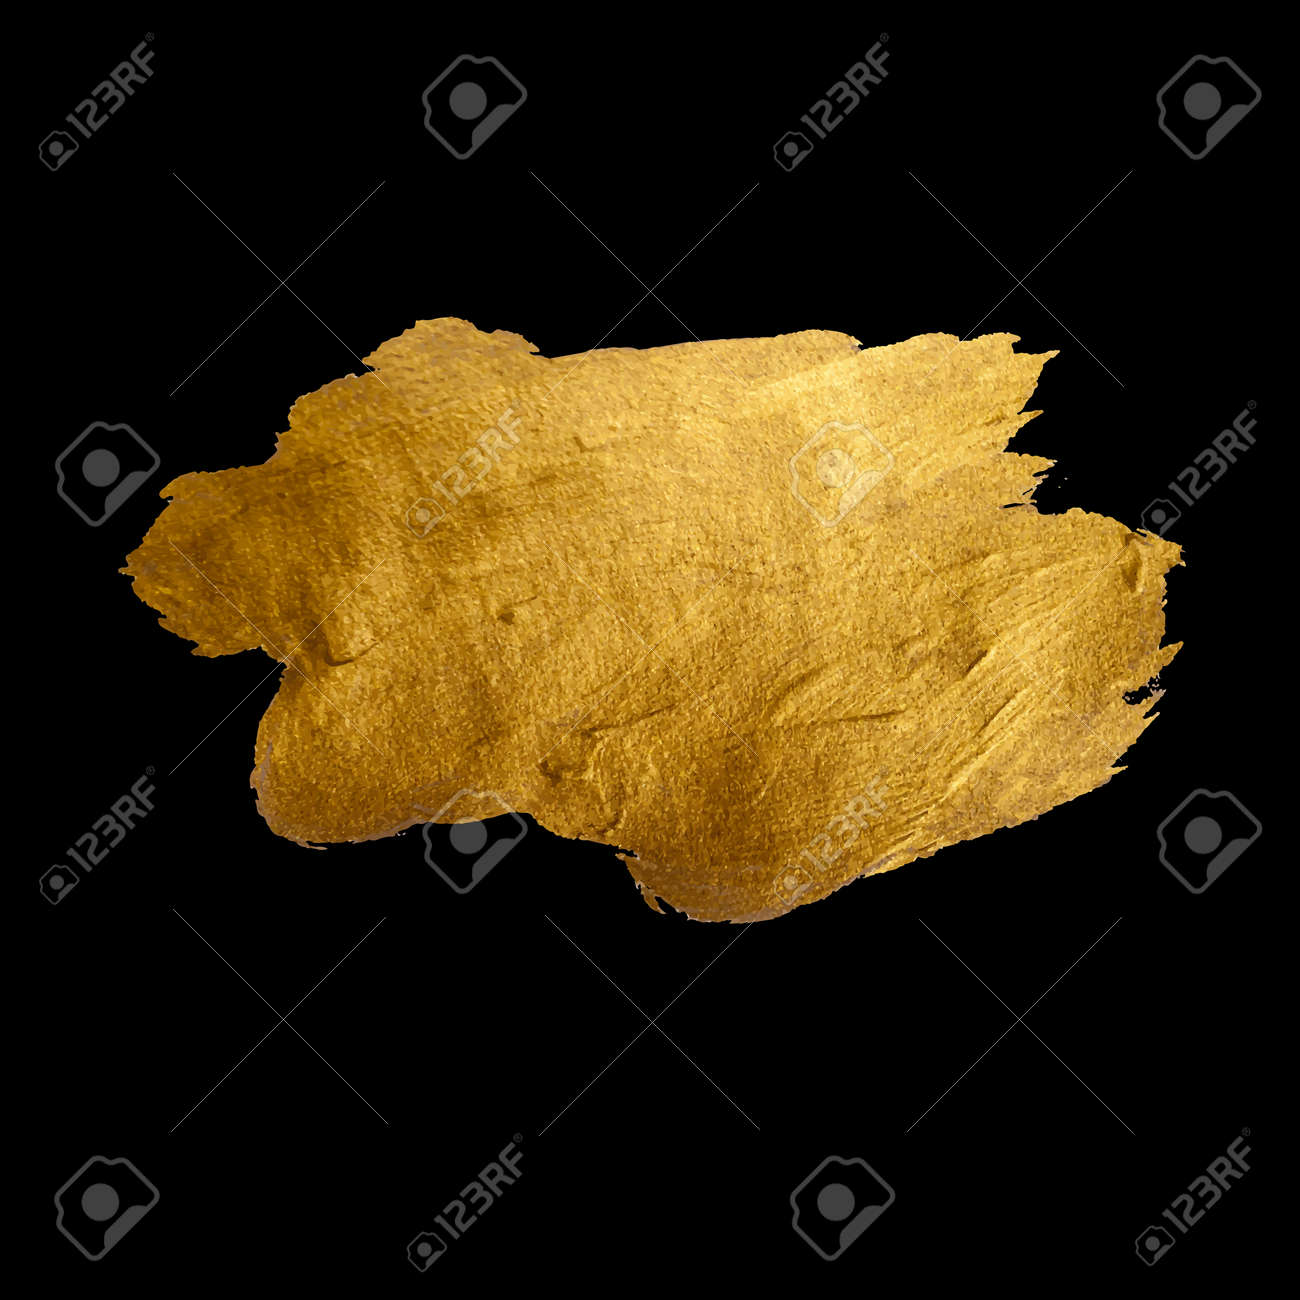 Gold Shining Paint Stain Hand Drawn Illustration - 43577472